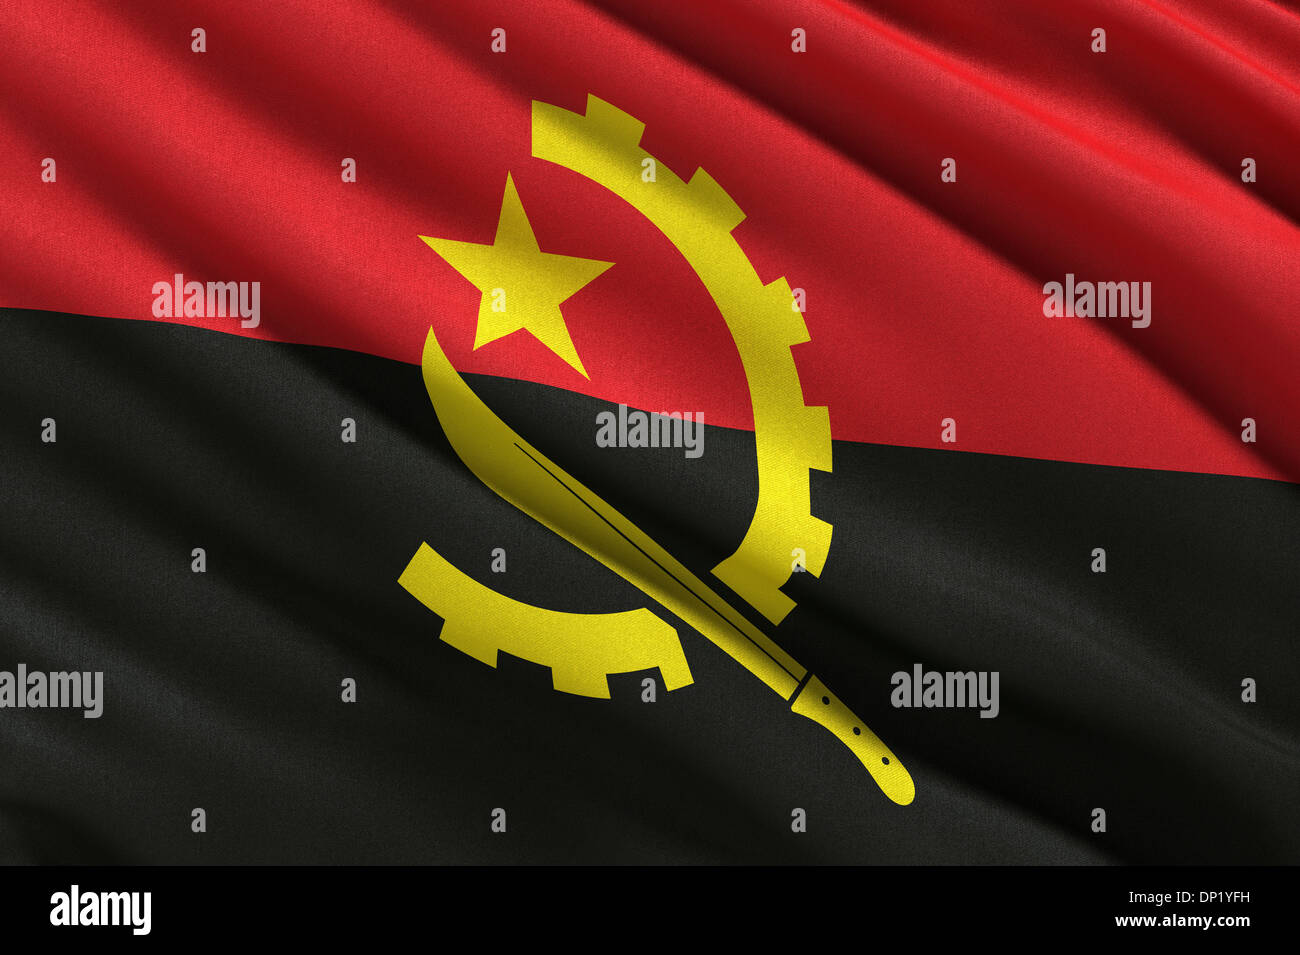 Flag of Angola waving in the wind - Stock Image